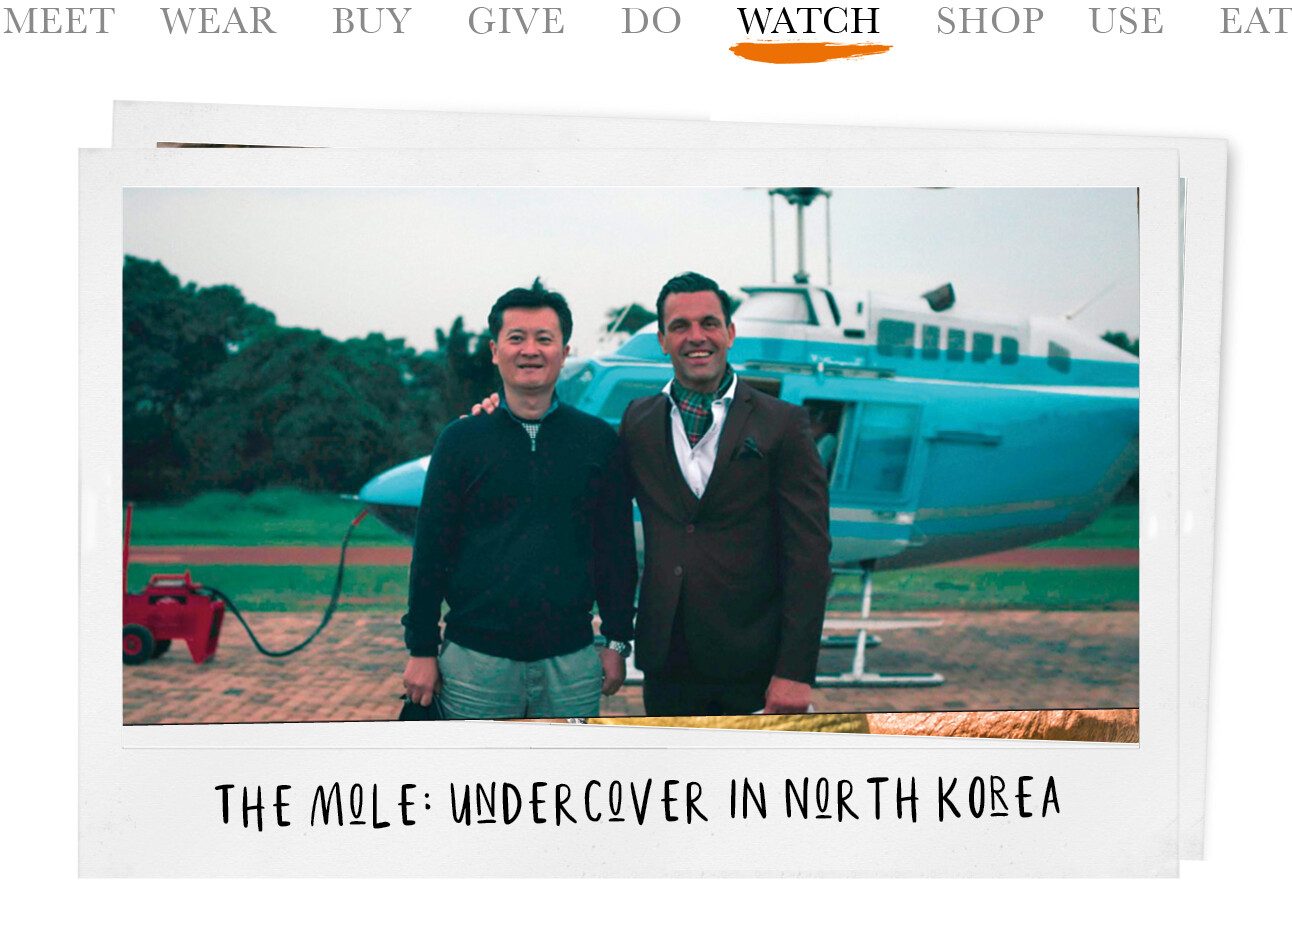 The Mole: Undercover in North Korea